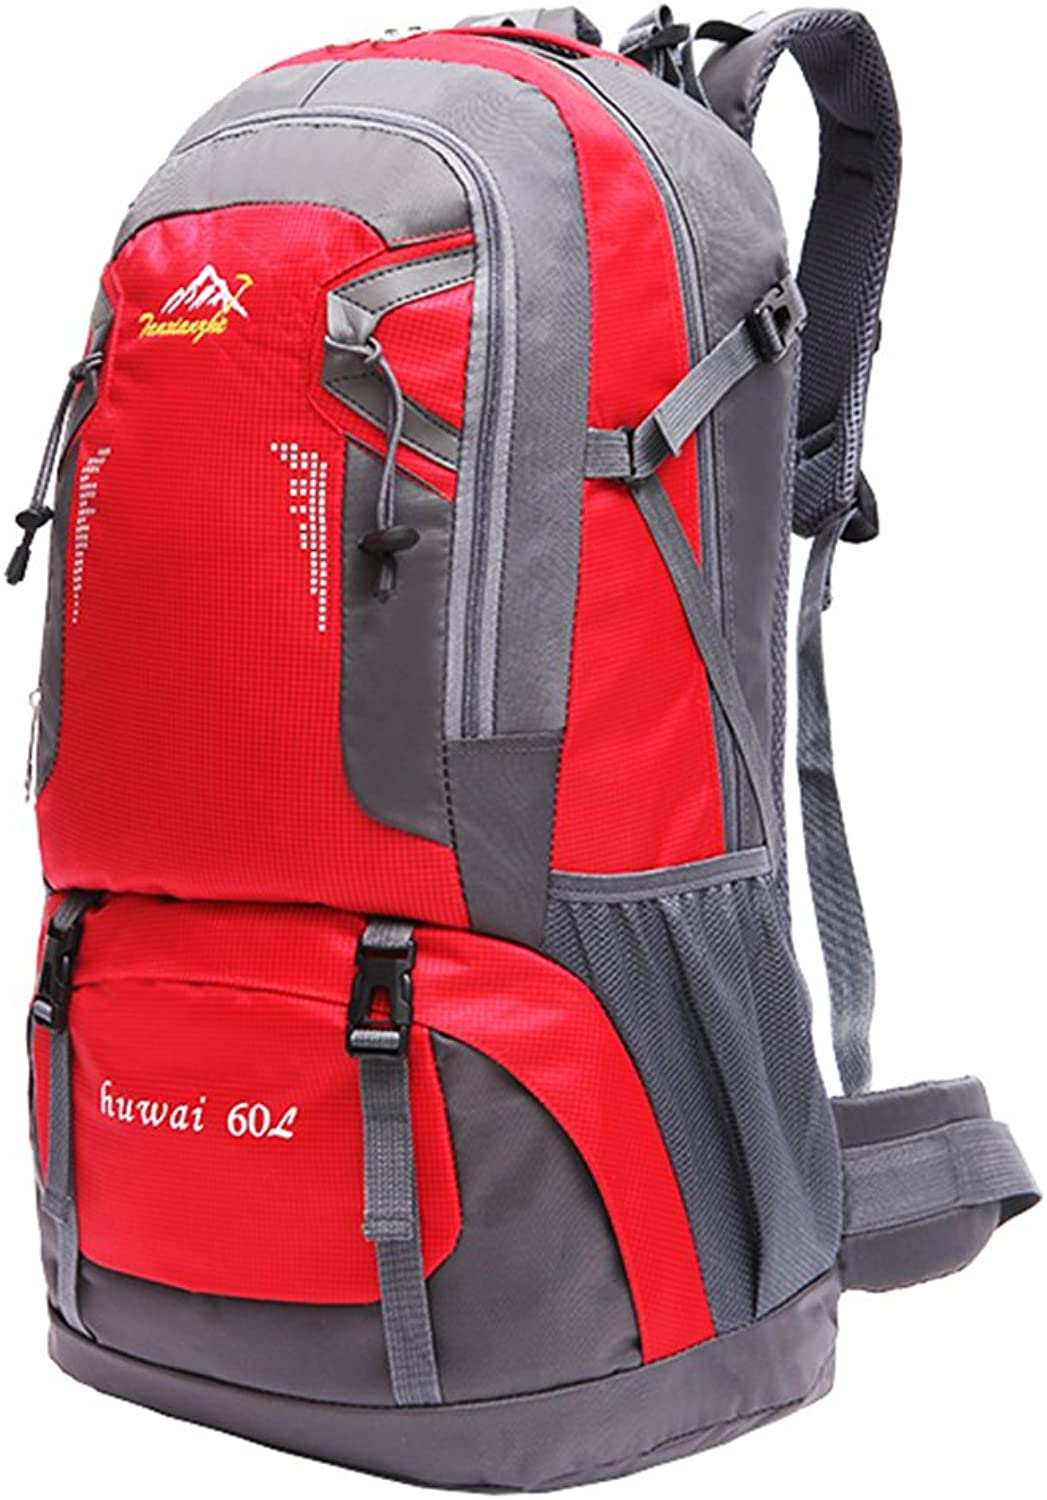 GWELL Big Size Lightweight Waterproof Backpack for Hiking Travel 60L-Pack